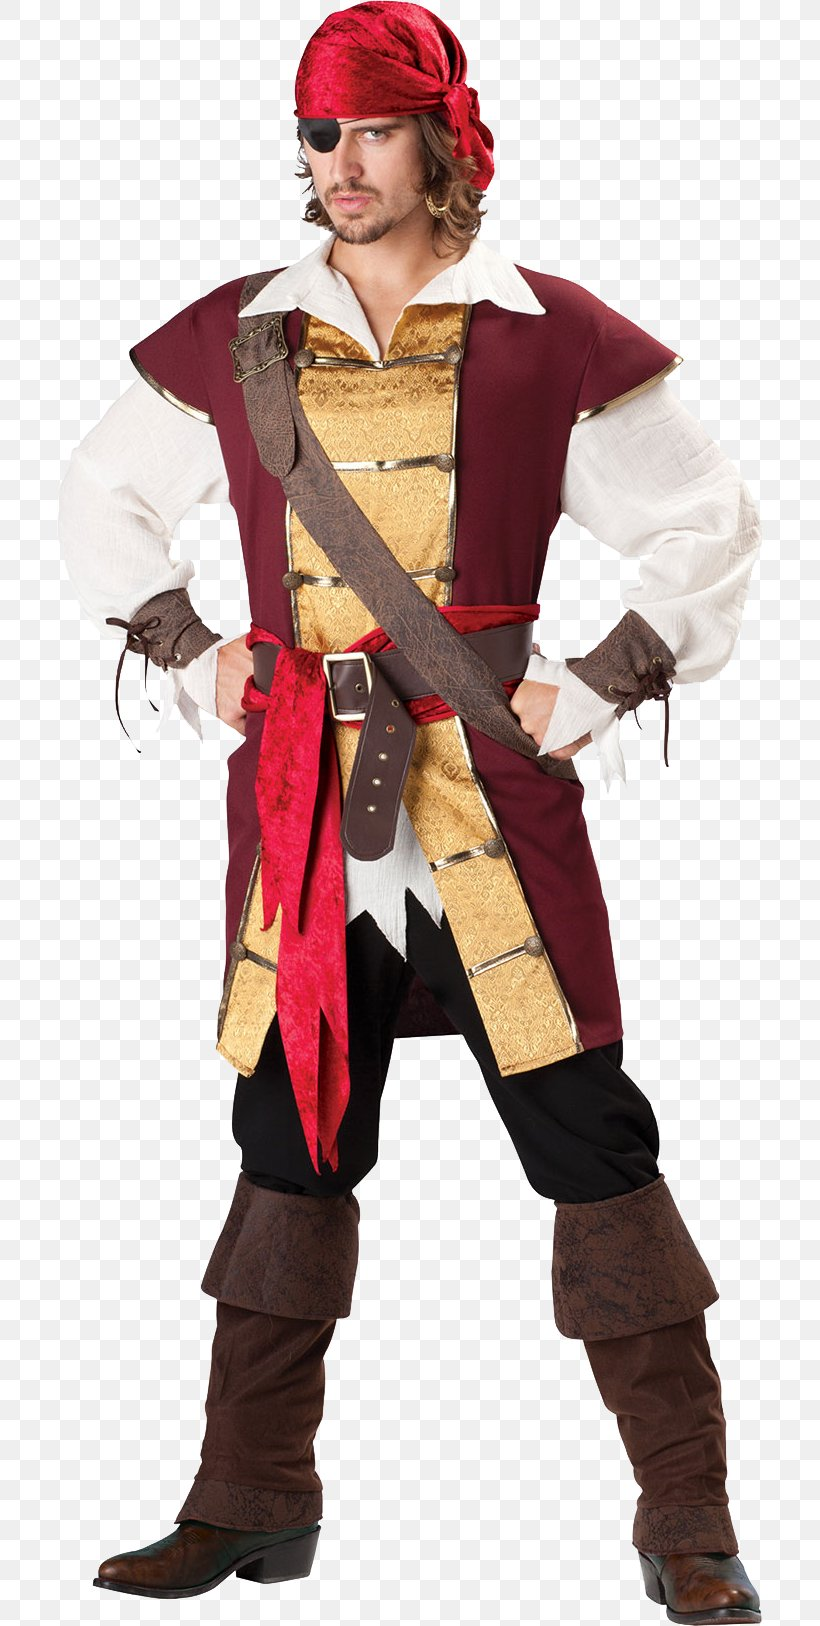 Halloween Costume Piracy Costume Party Couple Costume, PNG, 706x1626px, Costume, Adult, Buccaneer, Clothing, Clothing Sizes Download Free